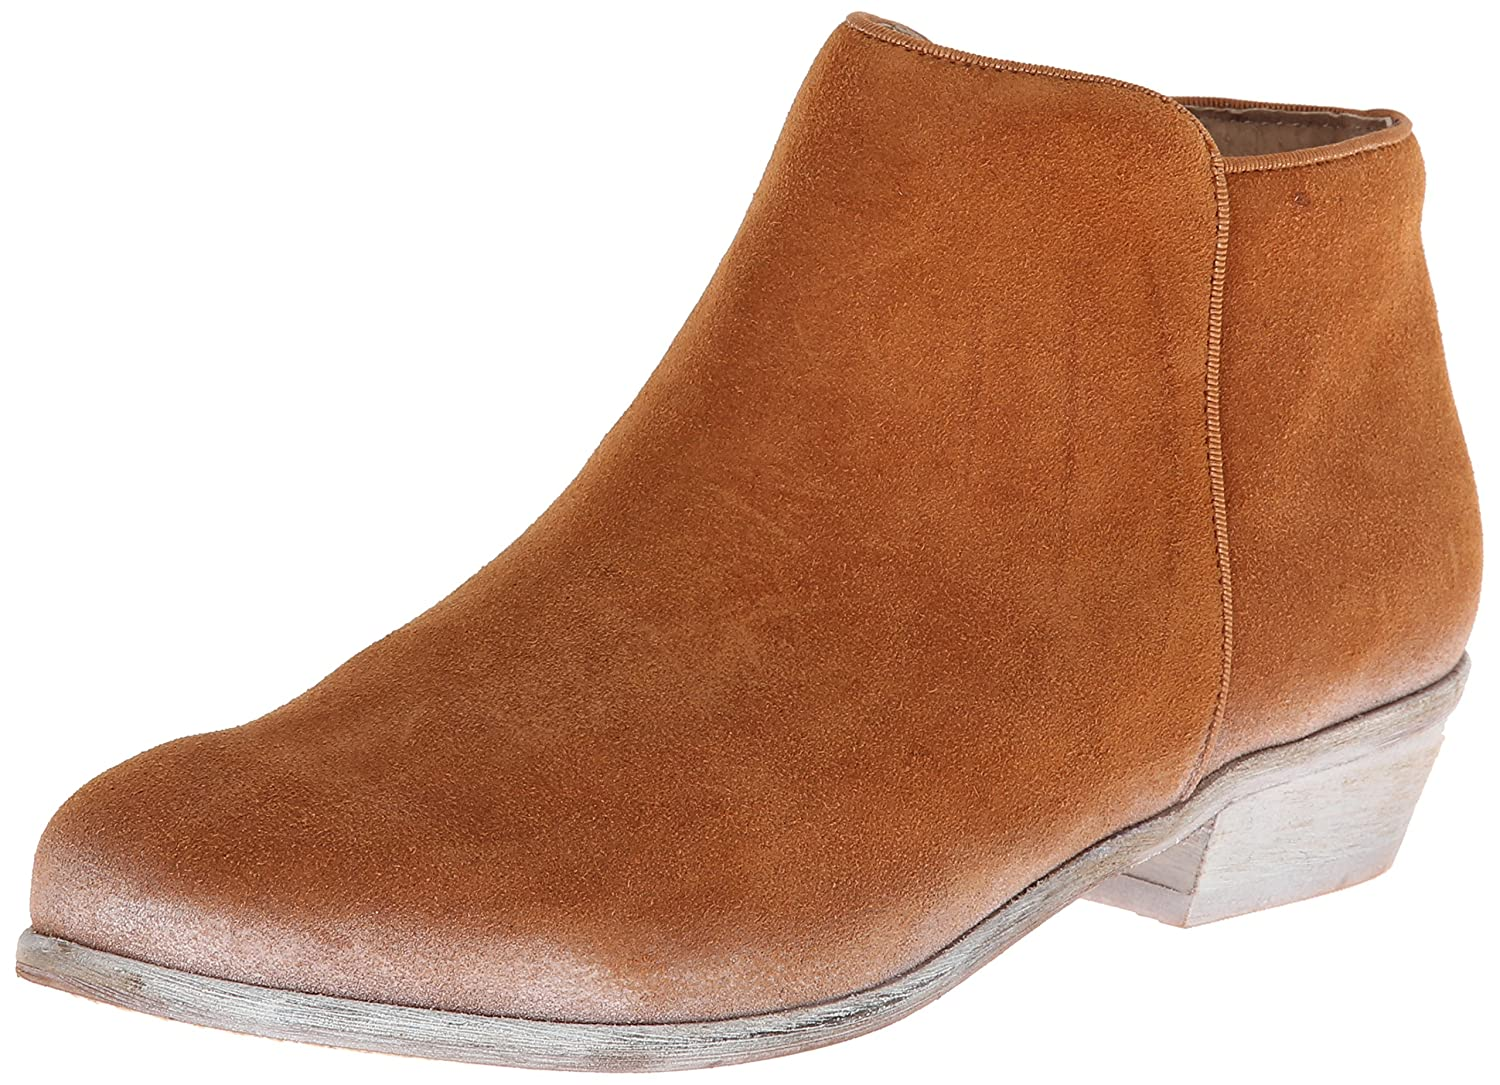 SoftWalk Women's Rocklin Chelsea Boot B00ICDMNG6 5.5 B(M) US|Rust